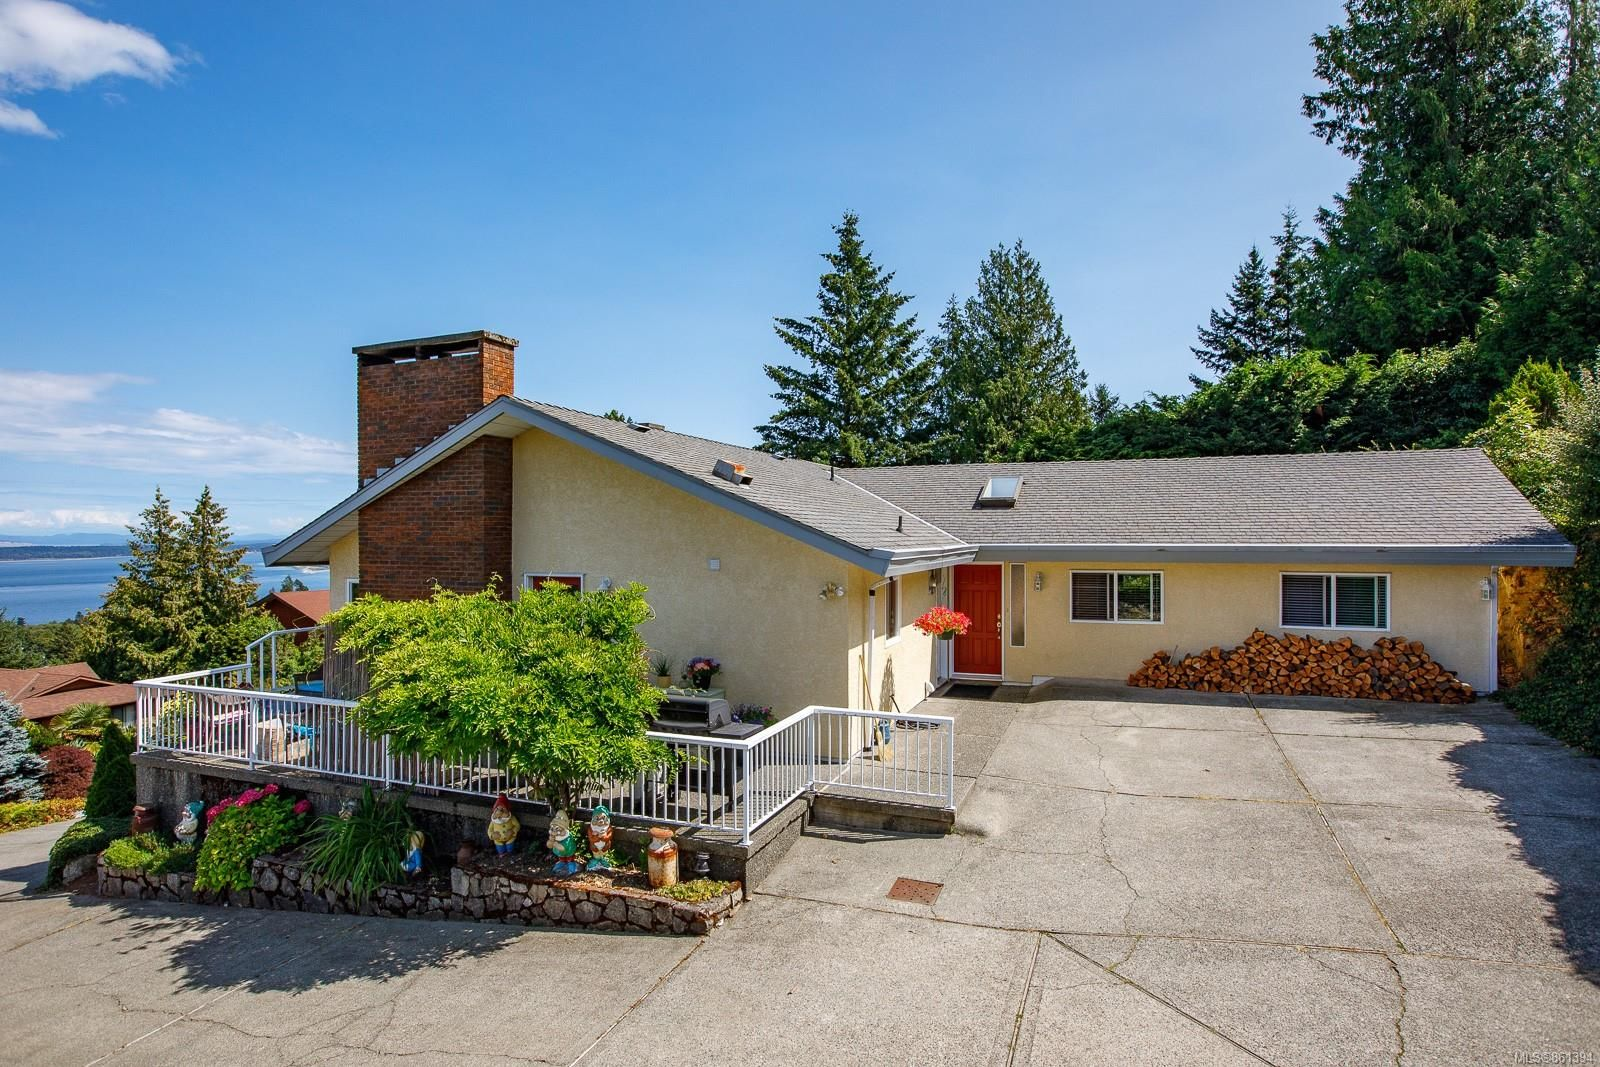 Main Photo: 8846 Forest Park Dr in : NS Dean Park House for sale (North Saanich)  : MLS®# 861394